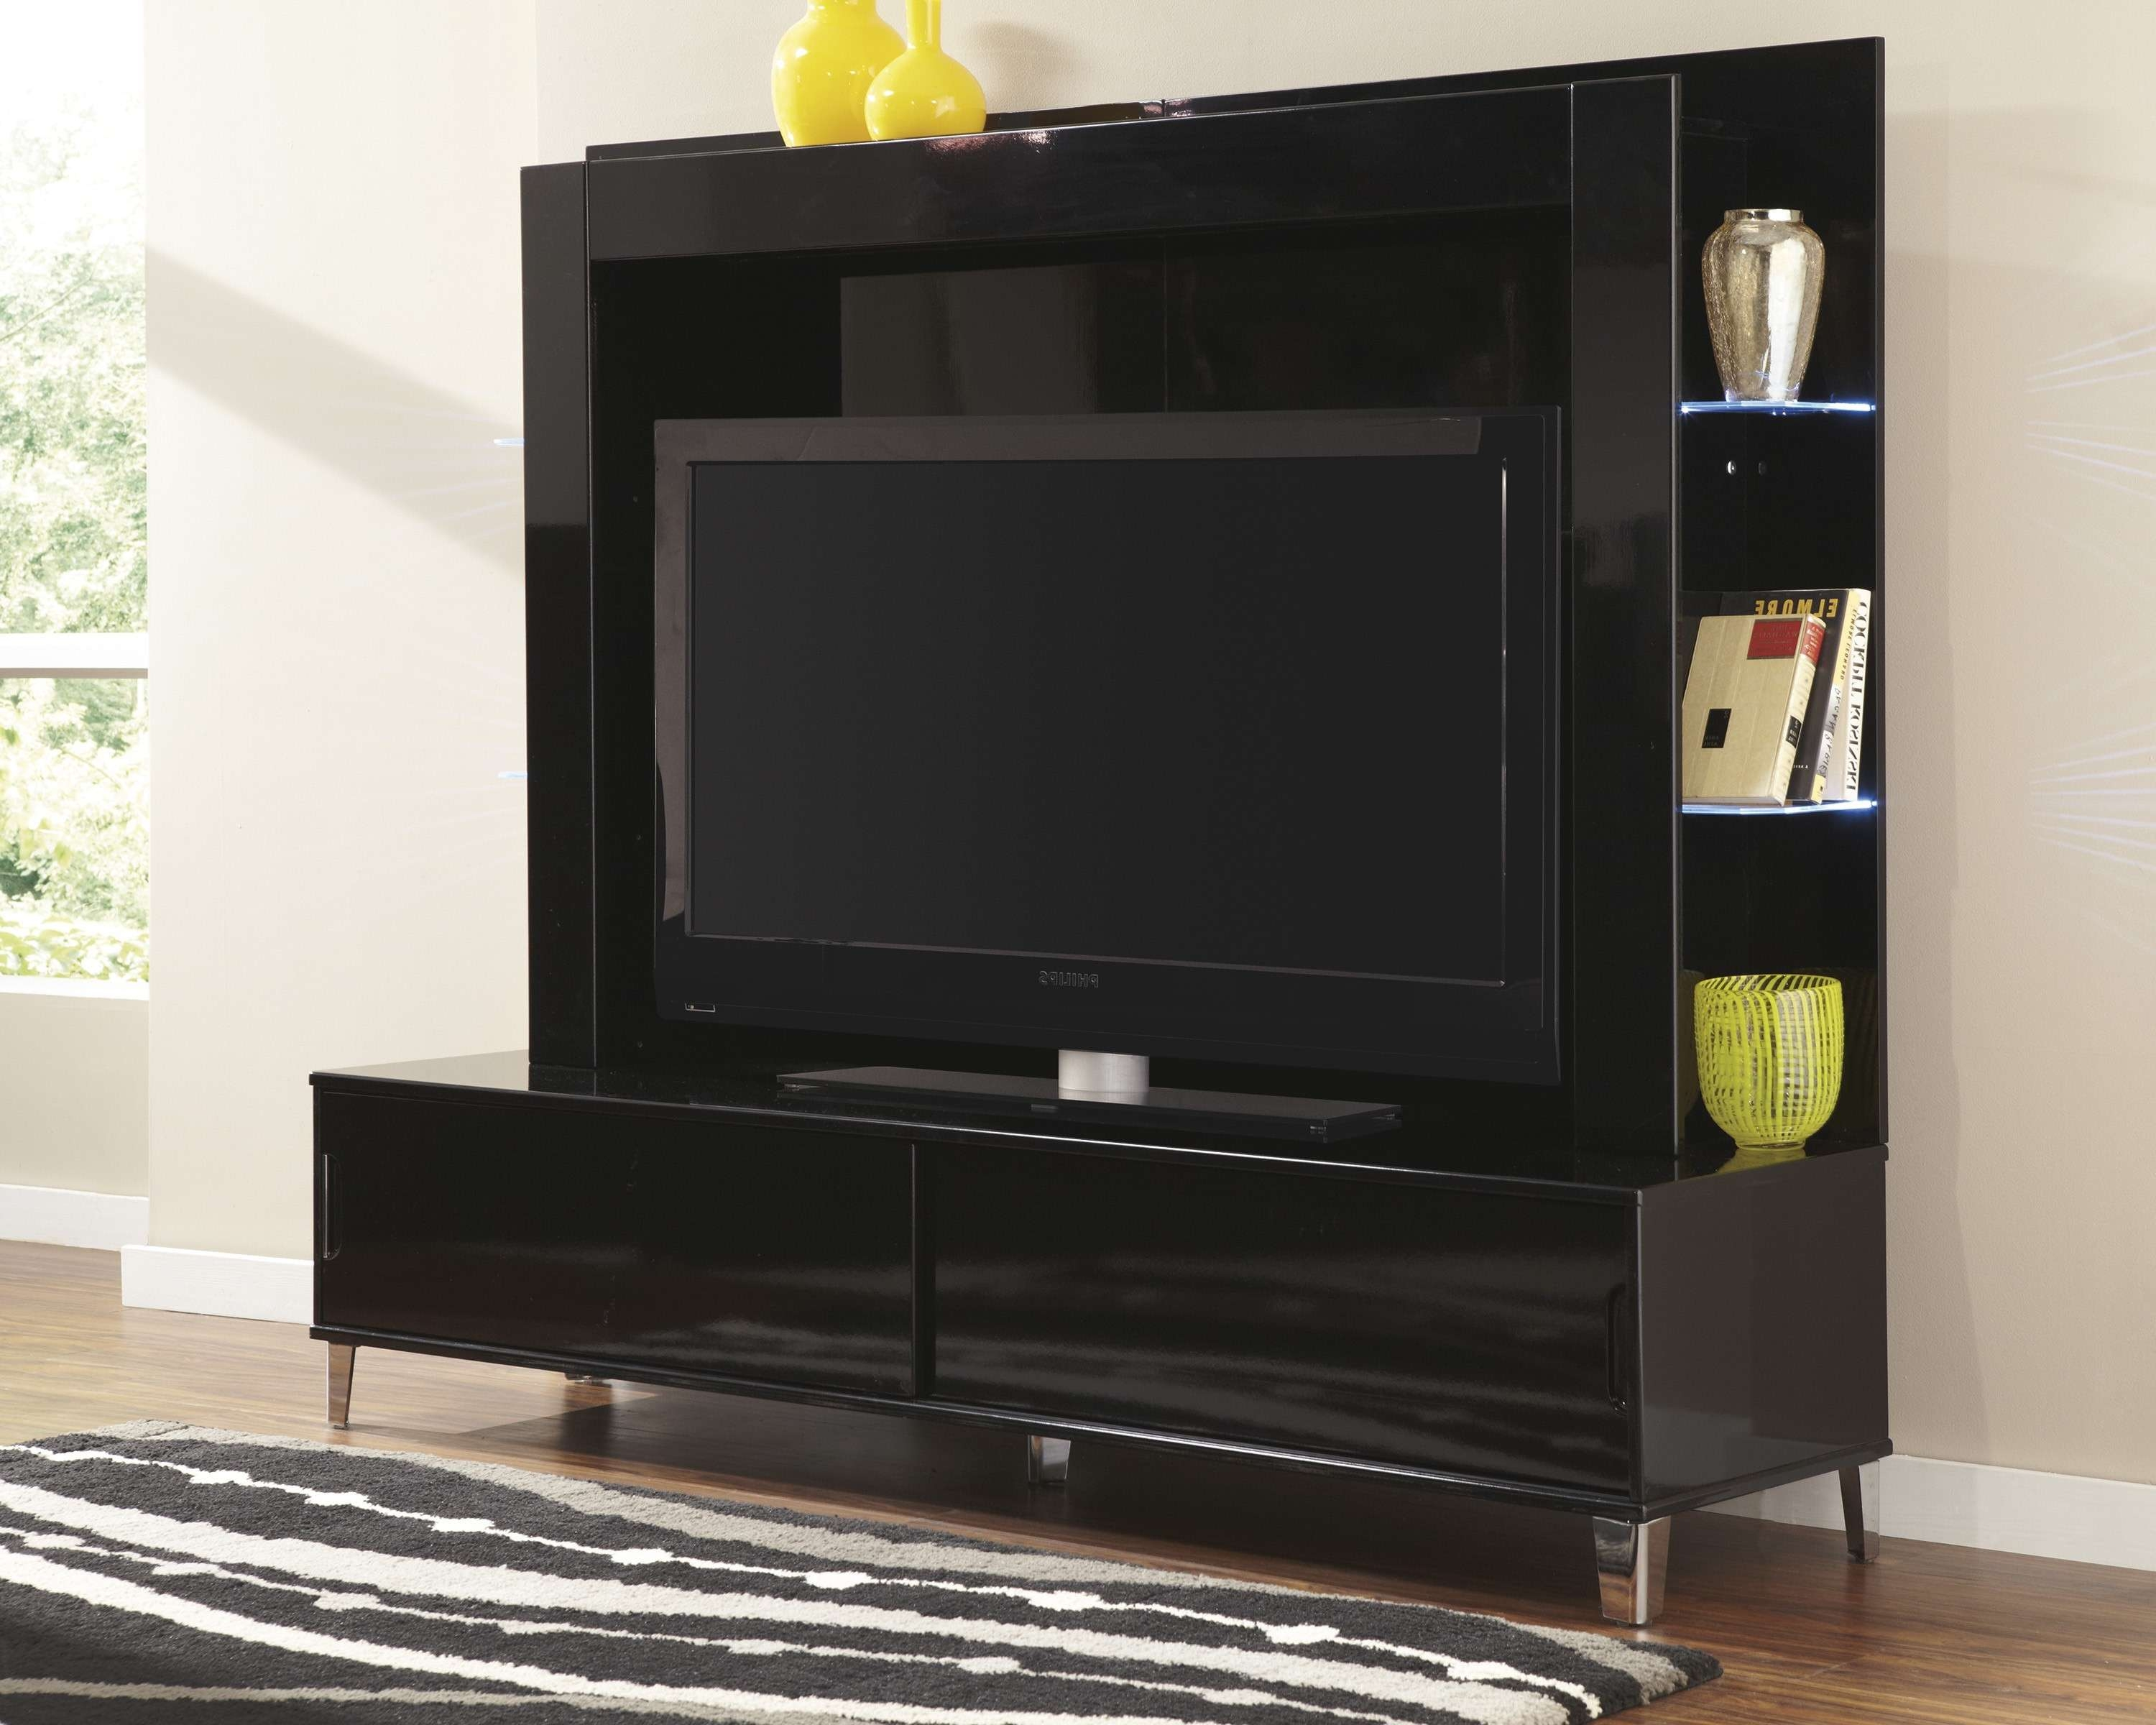 Bedrooms : Fascinating Flat Screen Tv Mount Stand Cream Wall Pertaining To Black Wood Corner Tv Stands (View 3 of 15)